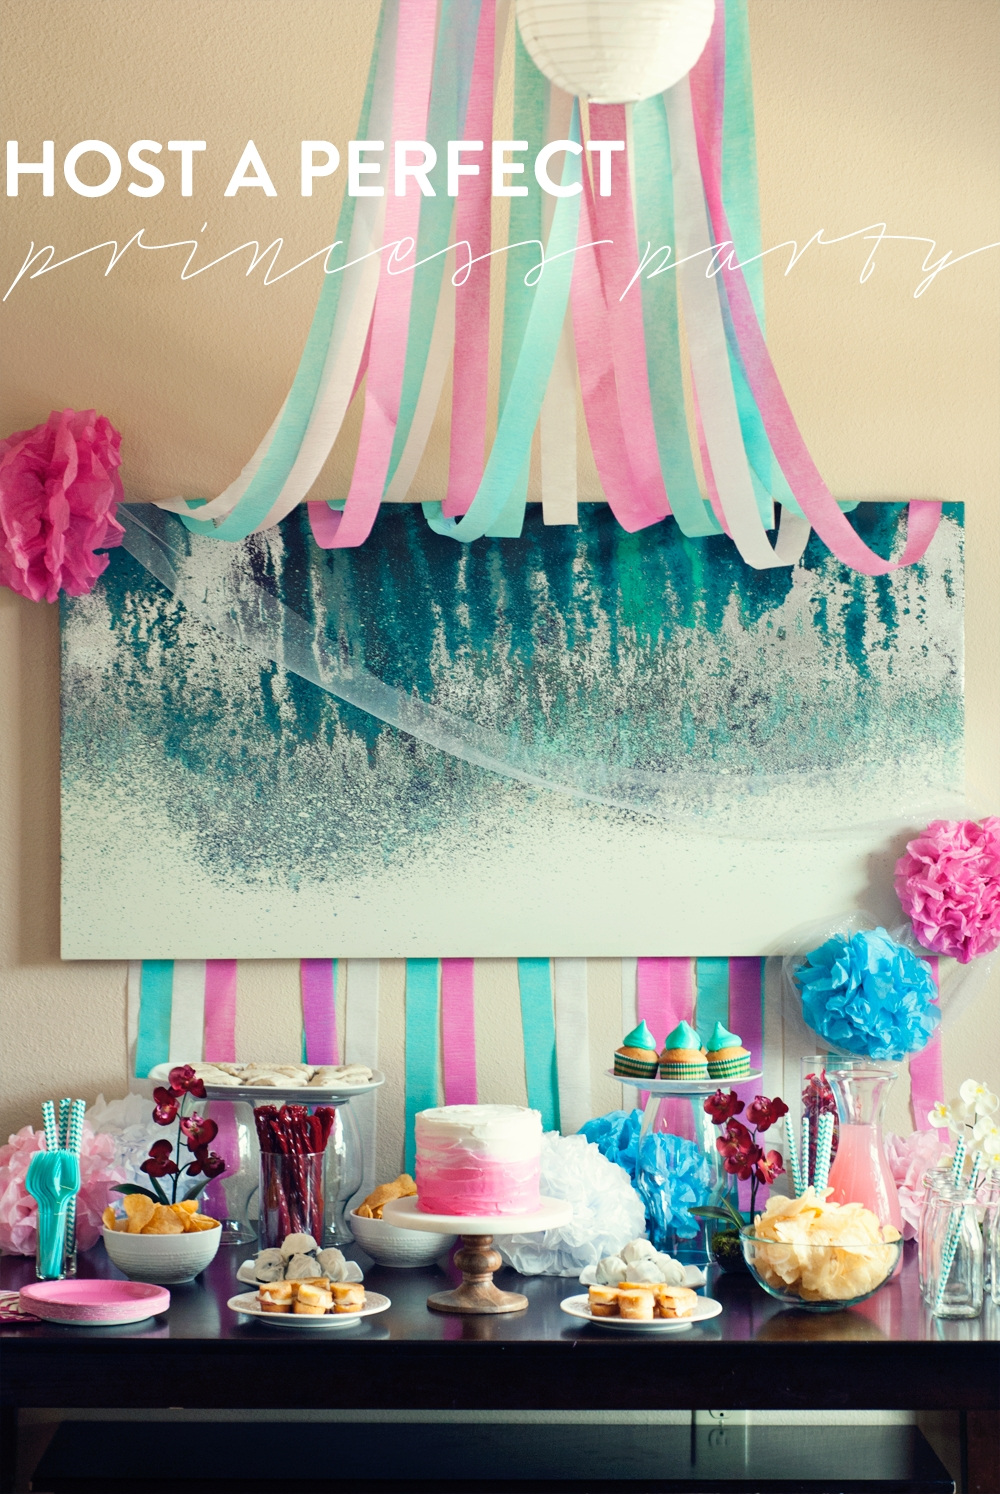 10 Fashionable Slumber Party Ideas For Girls host a perfect princess slumber party a simple pantry 1 2020